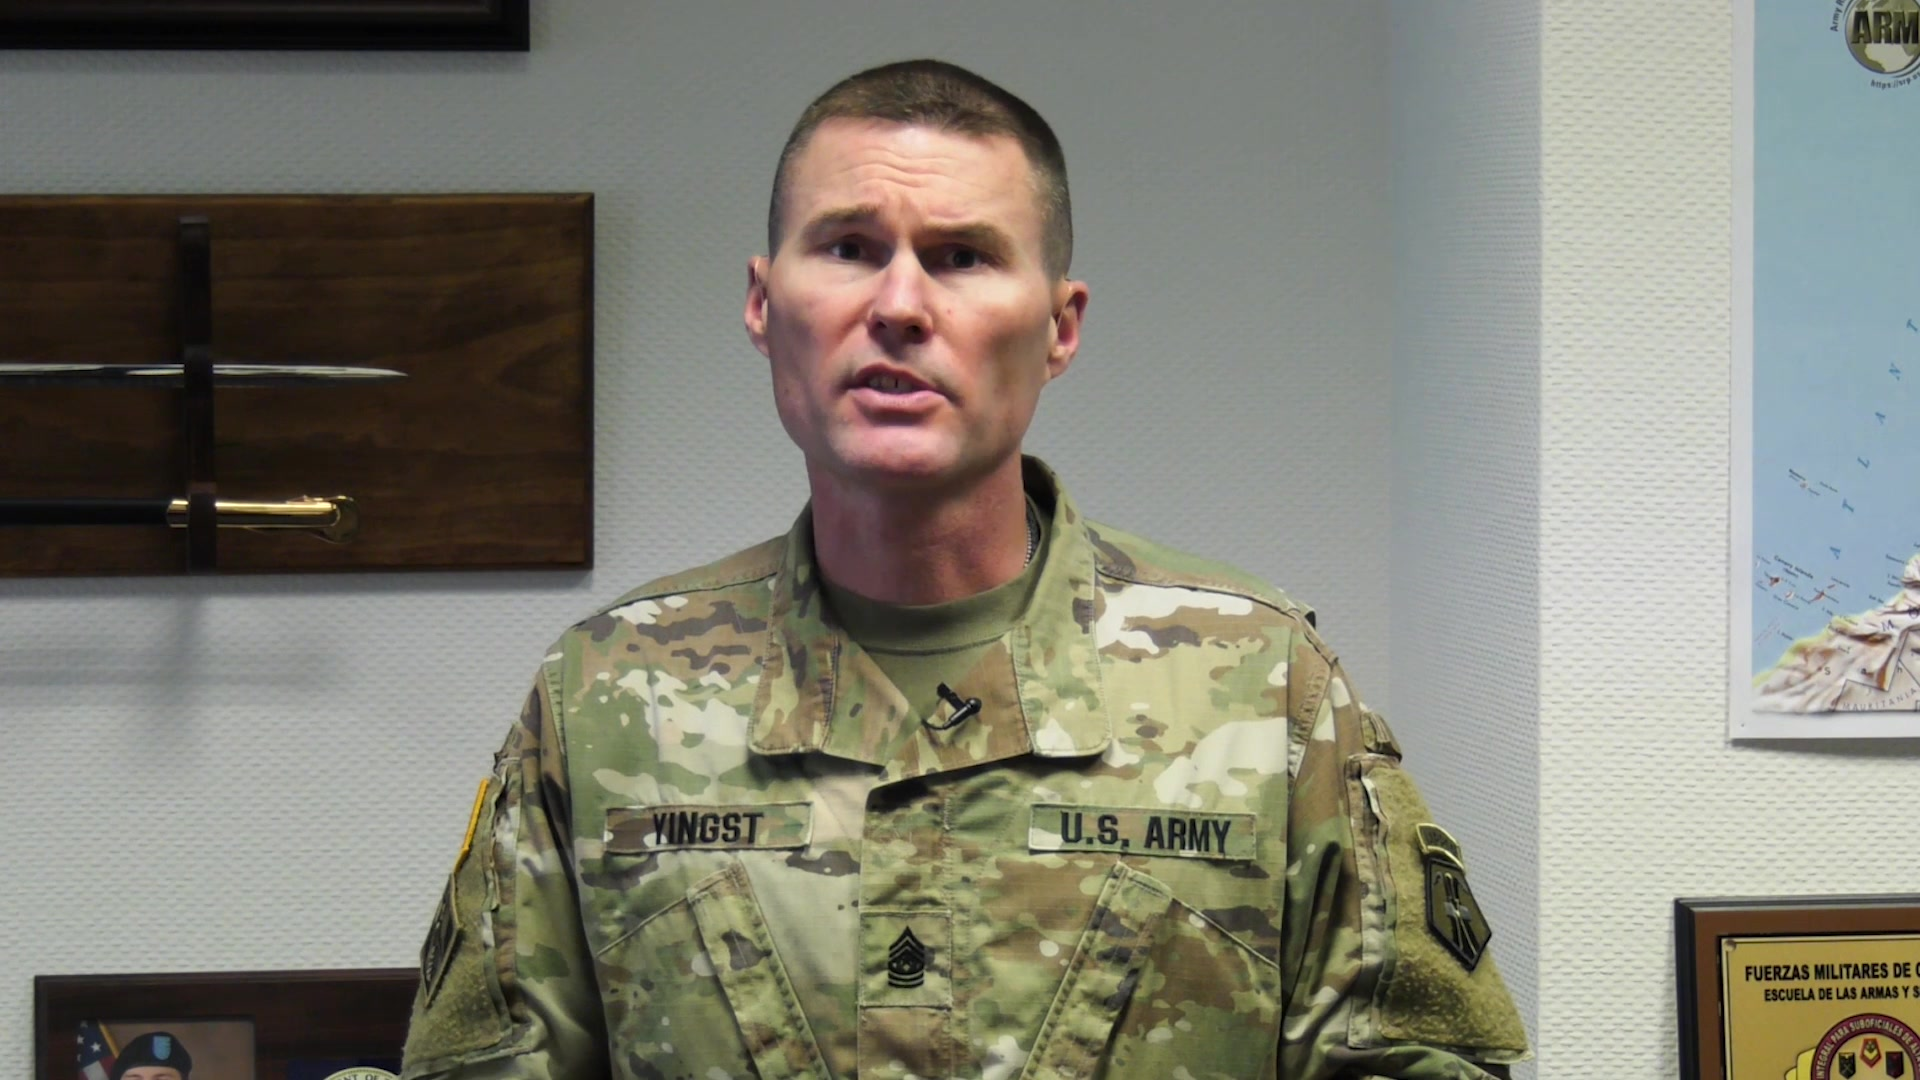 Command Sgt. Maj. Yingst of the 7th Mission Support Command discusses new information regarding COVID-19 in Europe and some impacts on personnel and their families.